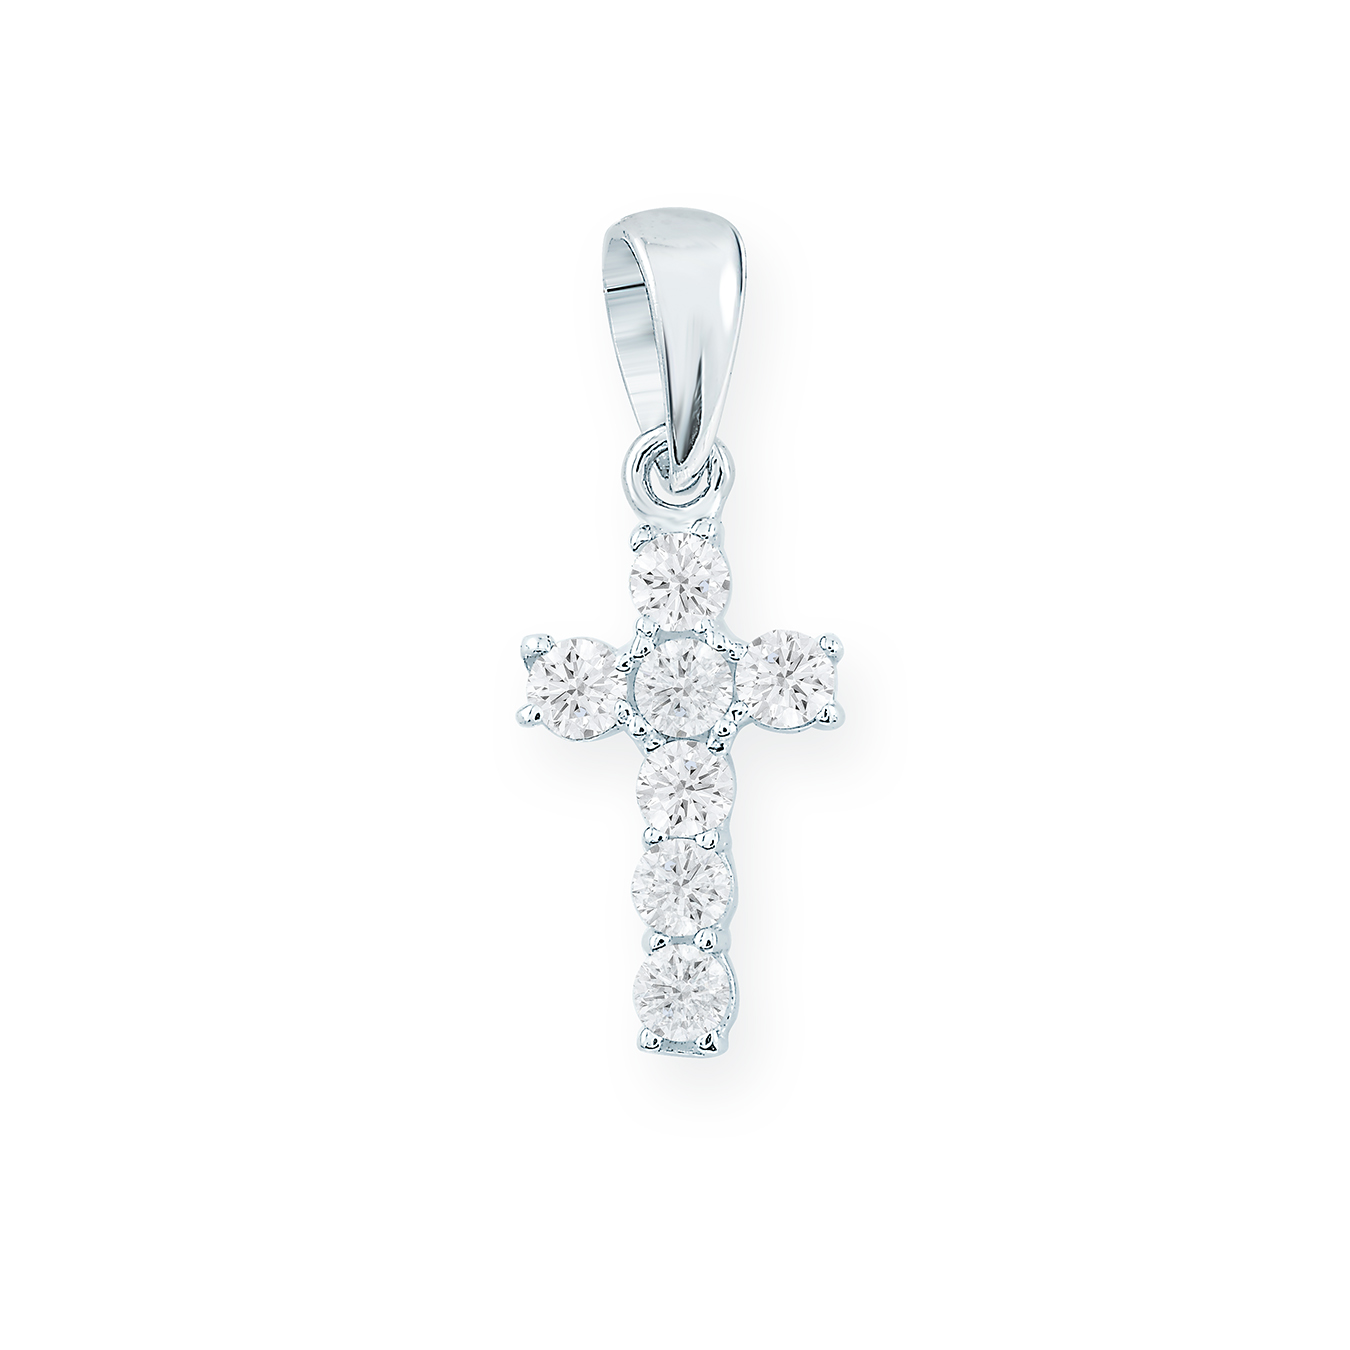 Cross pendant for children with cubic zirconia - in 10K white gold - Cross measurements: 0.6cm by 1.1cm